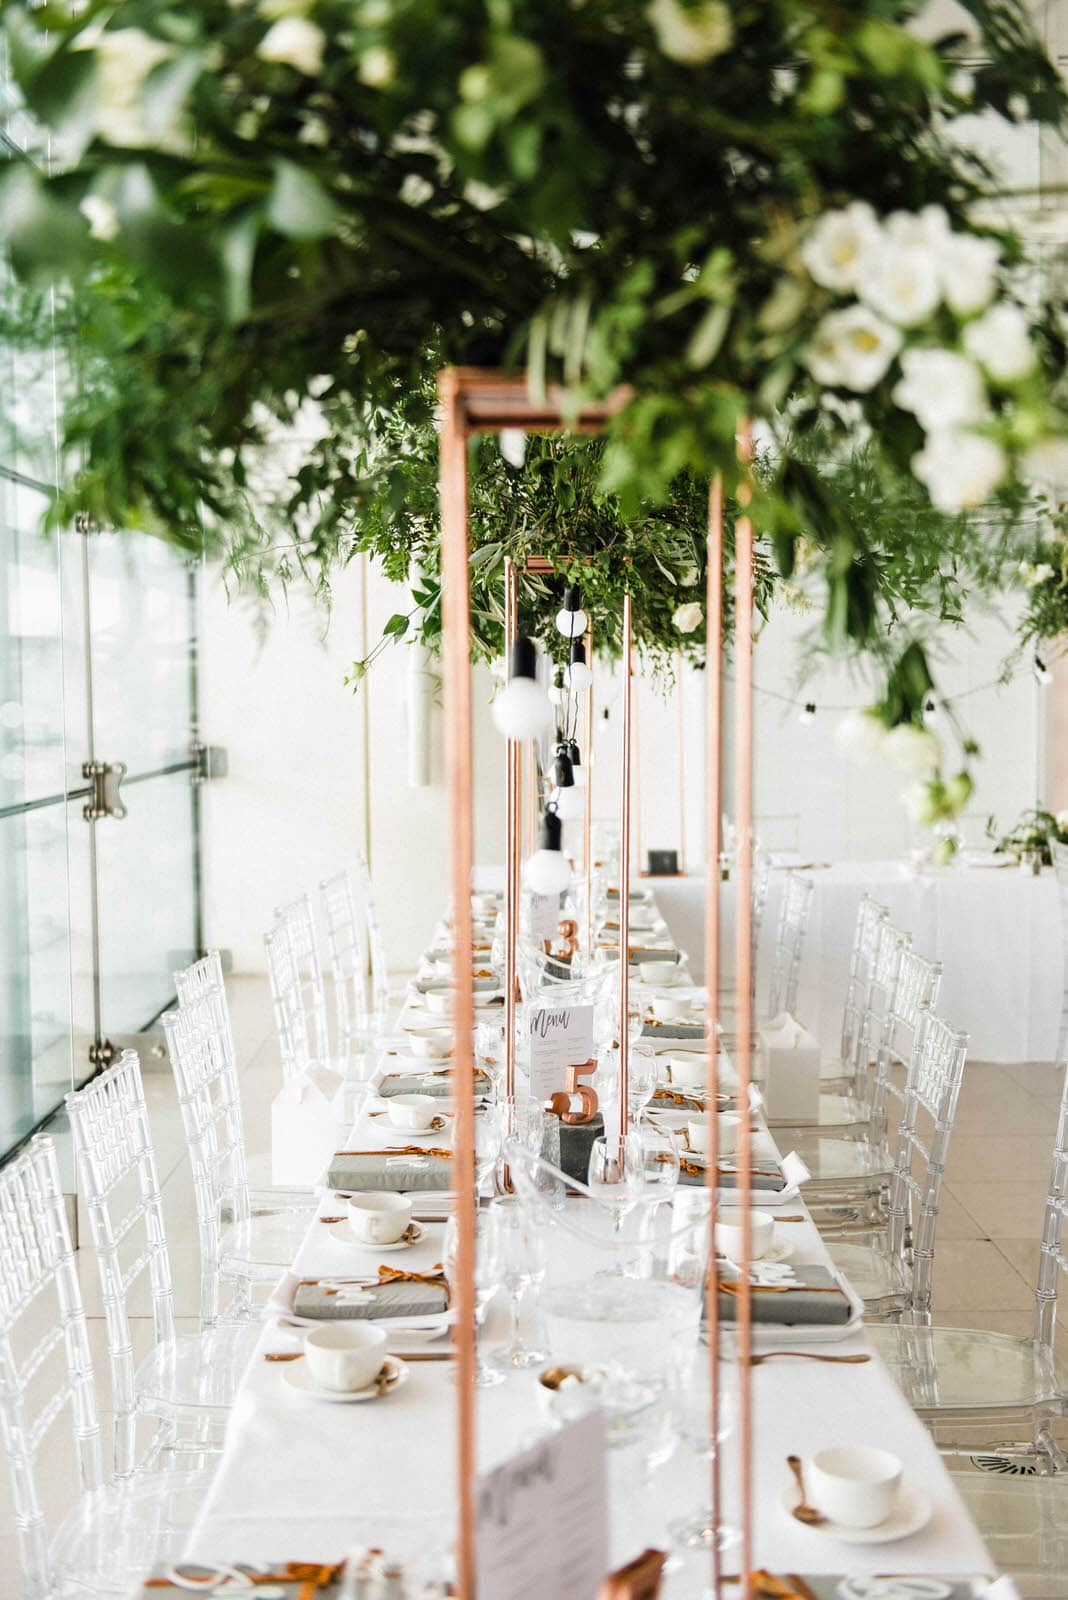 Banquet tables decorated with greenery, foliage and copper decorations in the Millennium Gallery in Sheffield